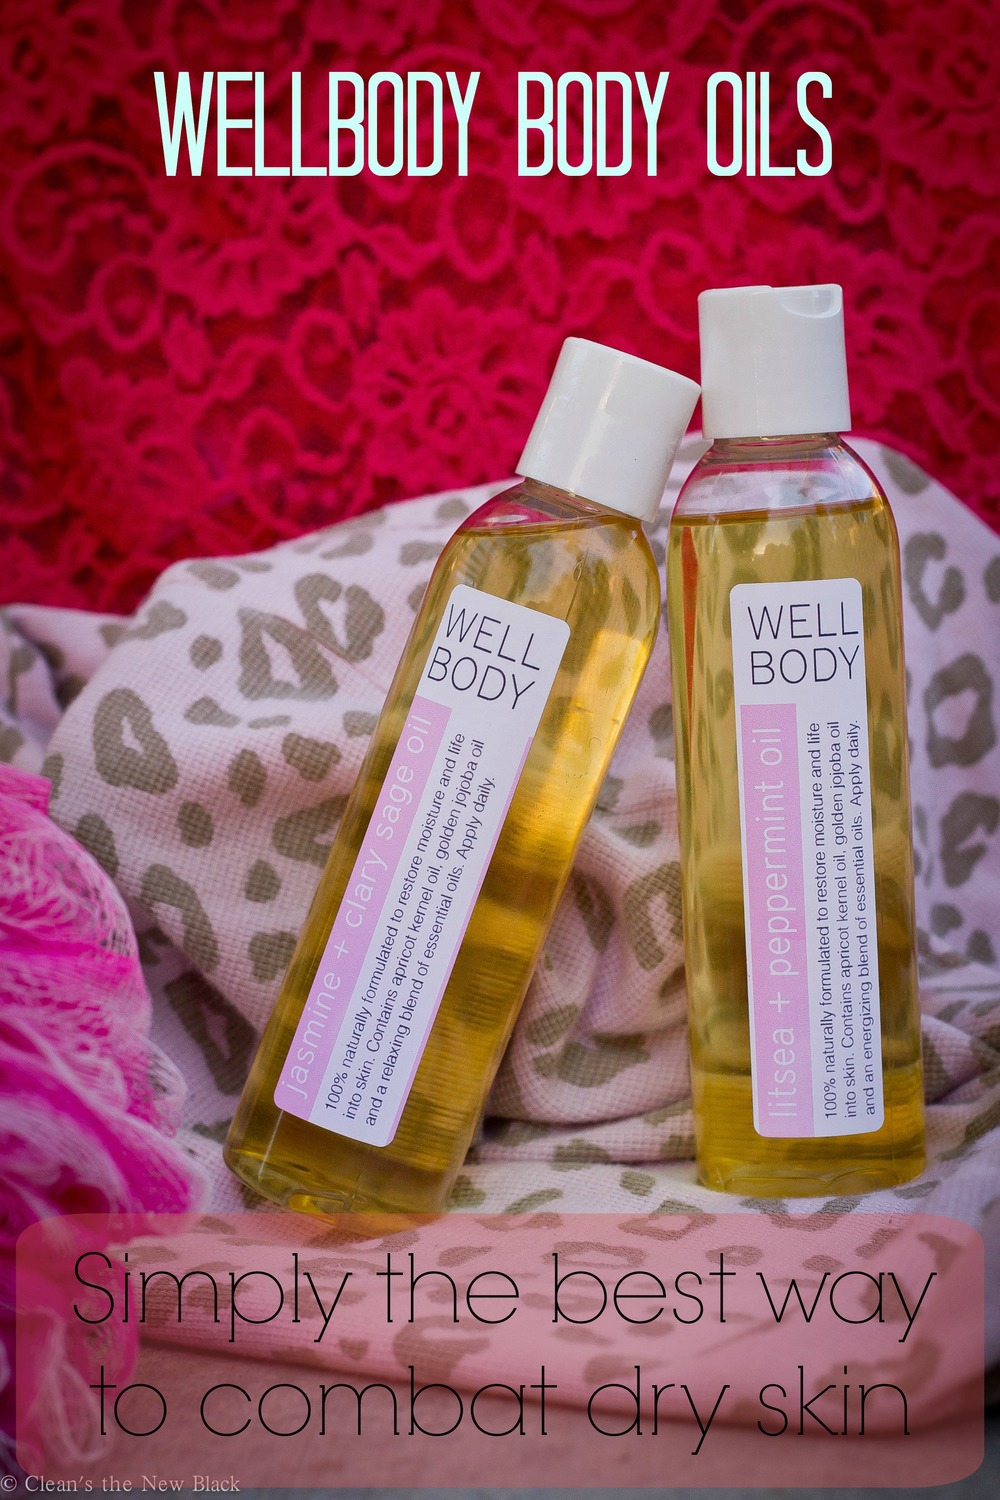 Get rid of that dry winter skin with body oils form WellBody. Plus check out the exclusive interview with the founder.